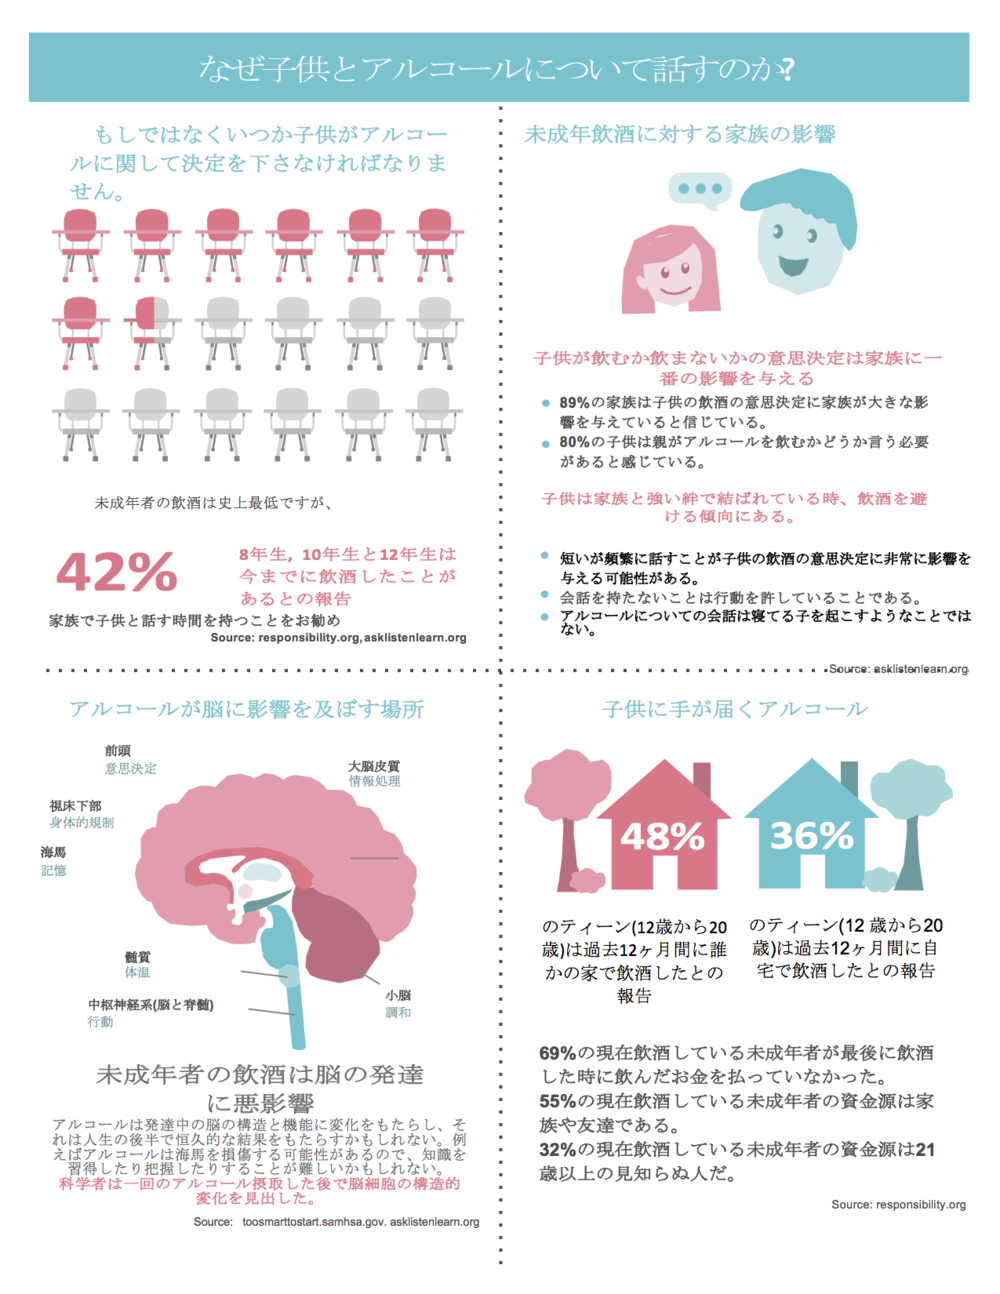 Japn-Alcohol Why Fact Sheet No Outline_Final.png